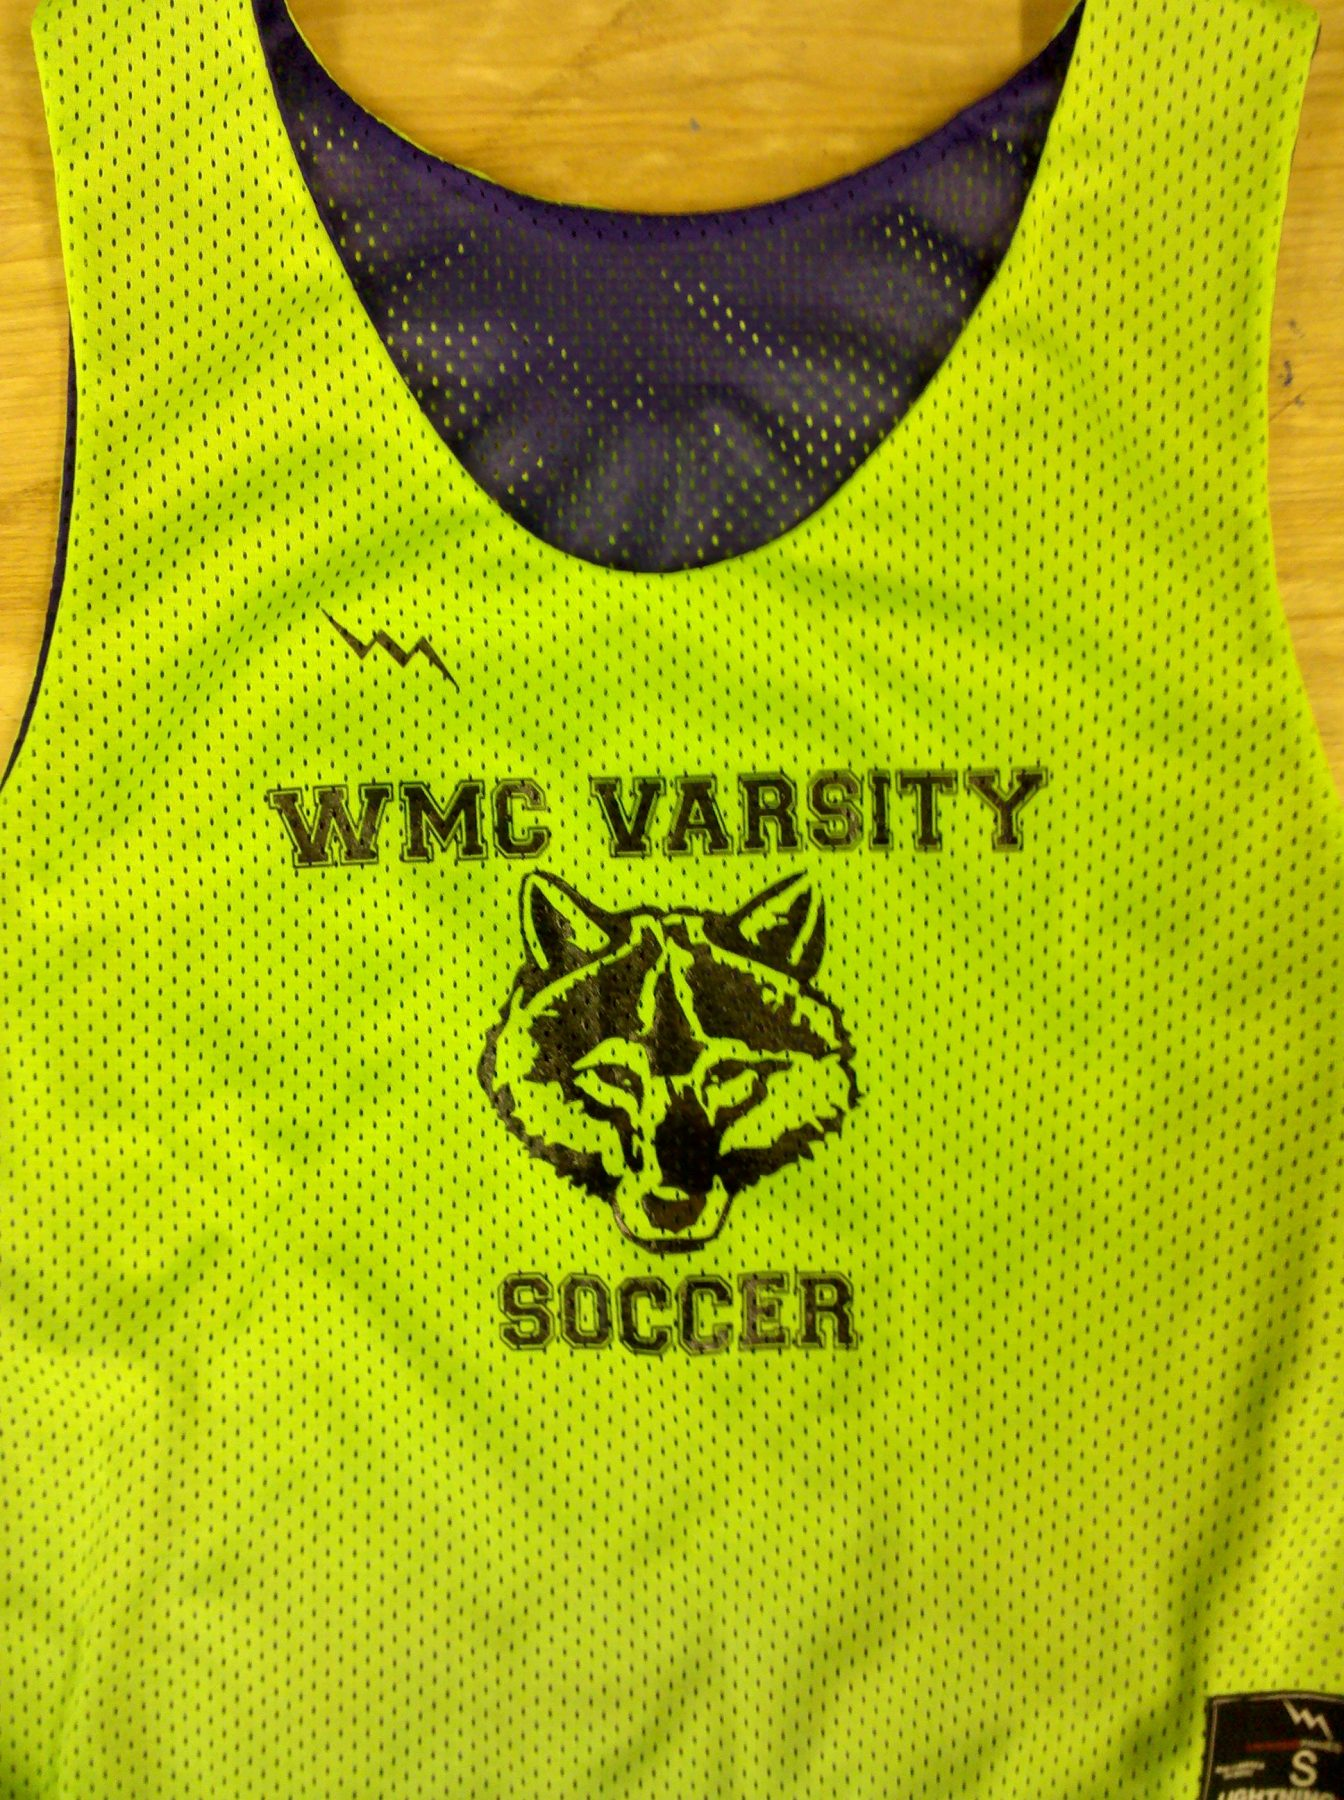 WMC Varsity Soccer Pinnies - Neon Green Pinnies